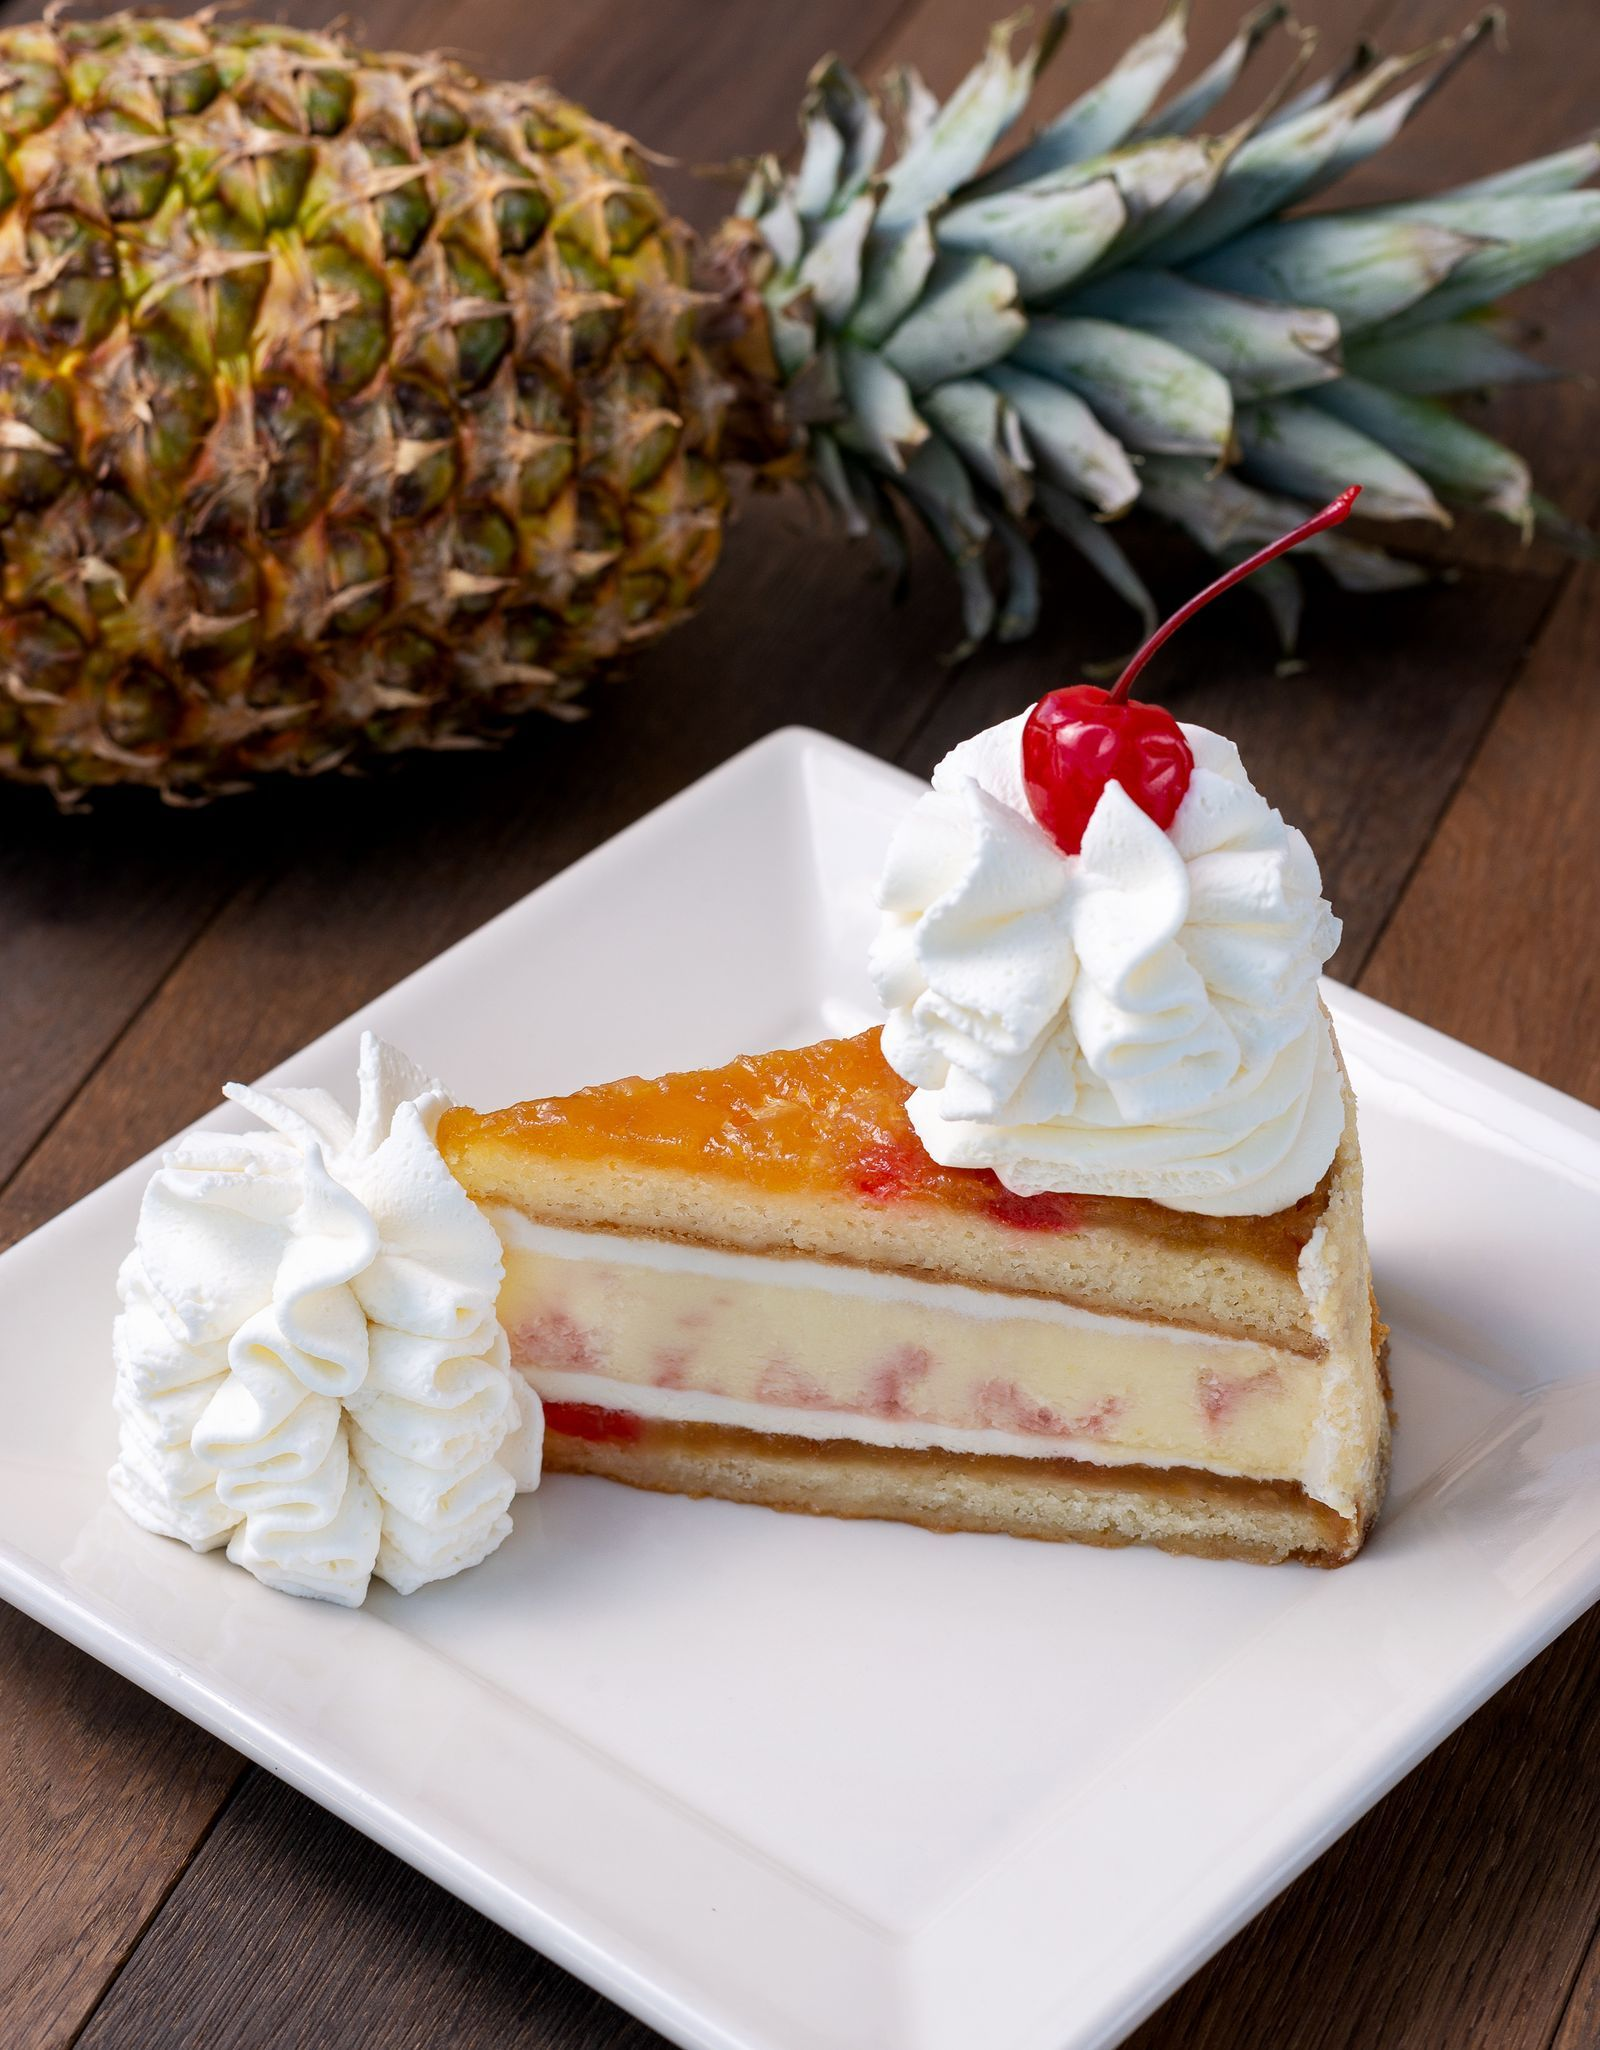 The Cheesecake Factory's Latest Flavor Has A Maraschino Cherry Swirl And Two Layers Of Pineapple Upside-Down Cake #cheesecakefactoryrecipes